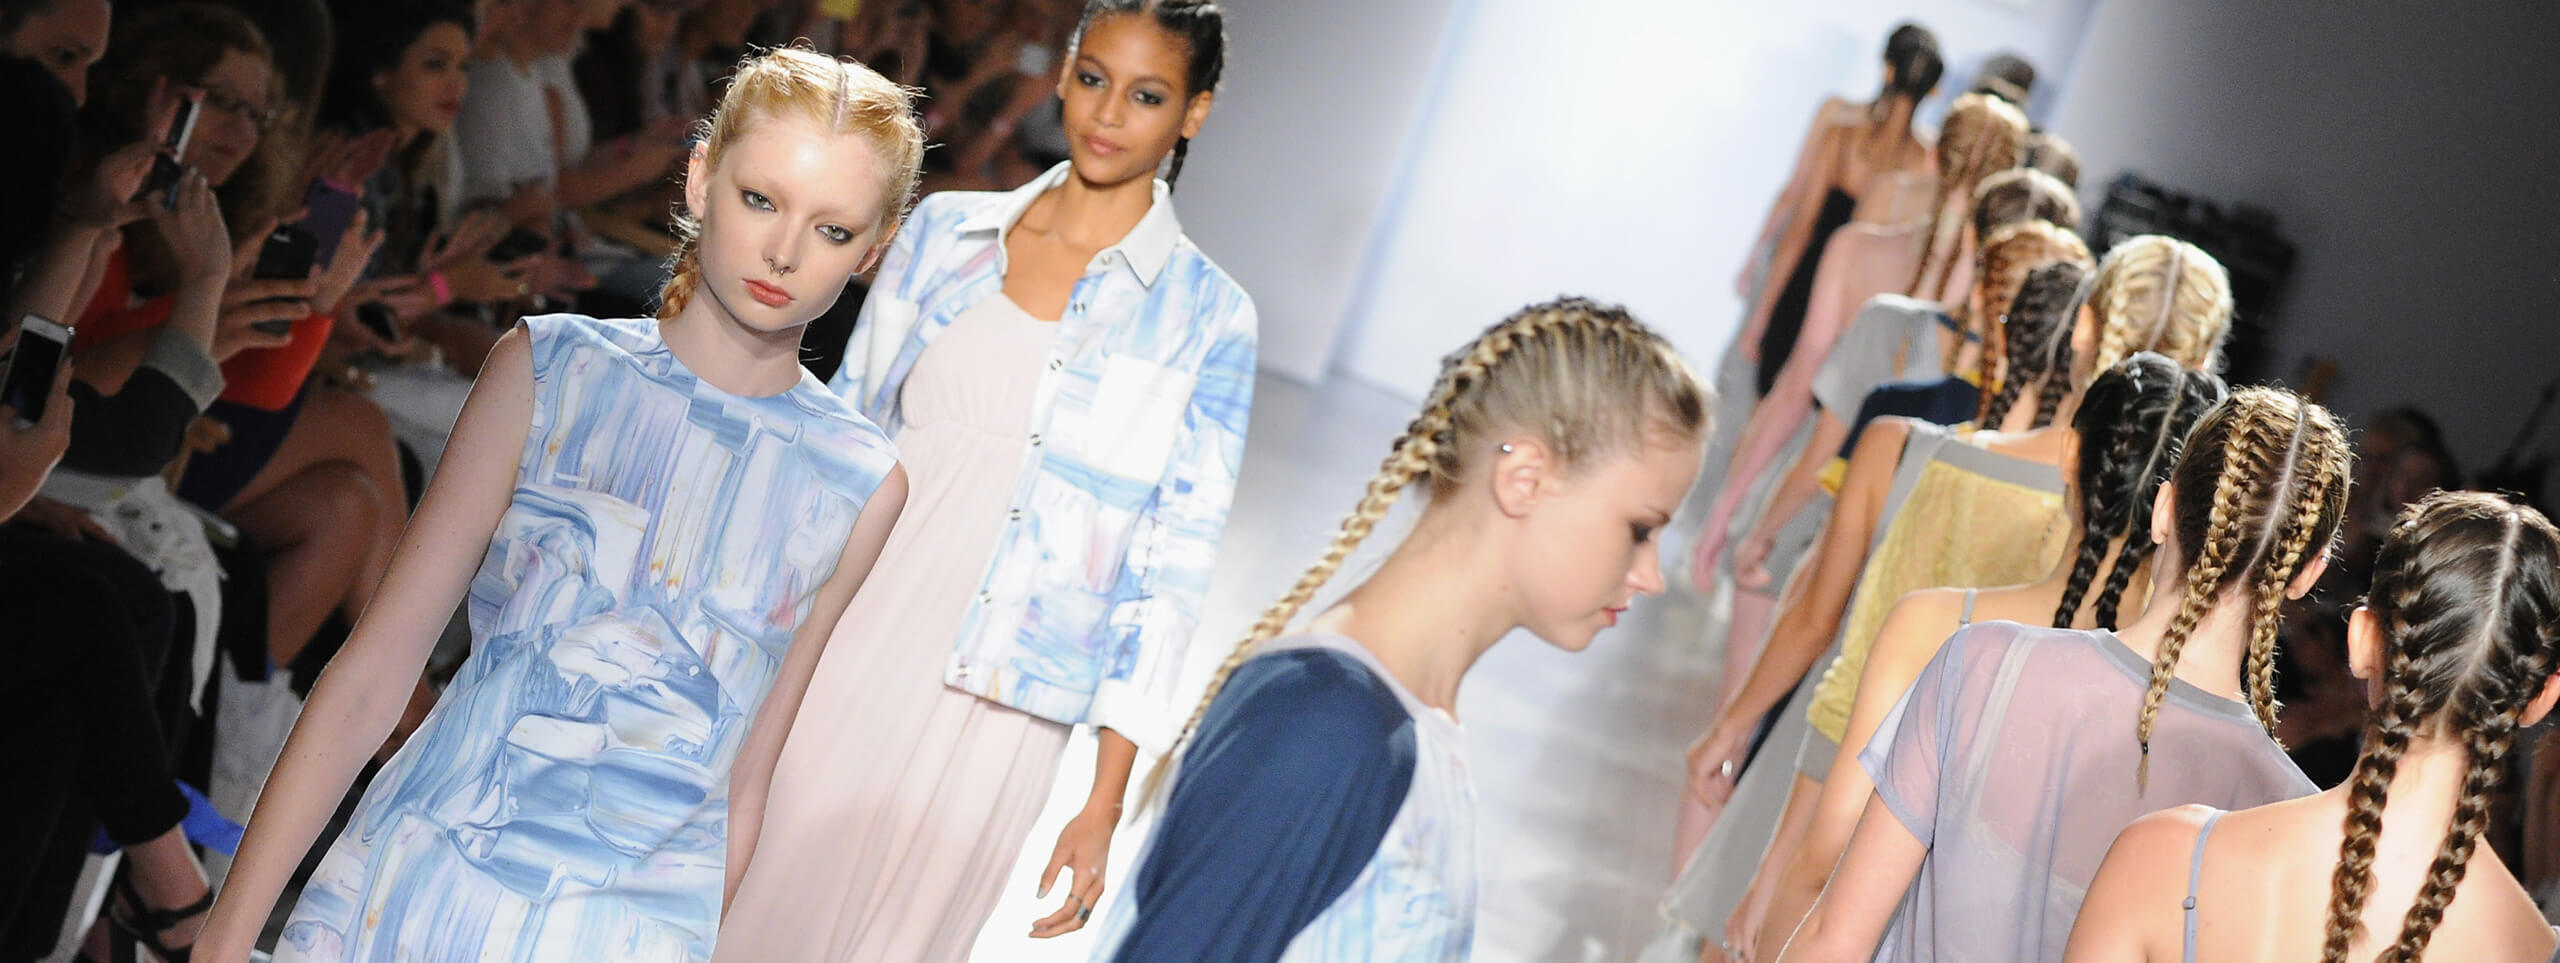 Many models with braided hairstyles